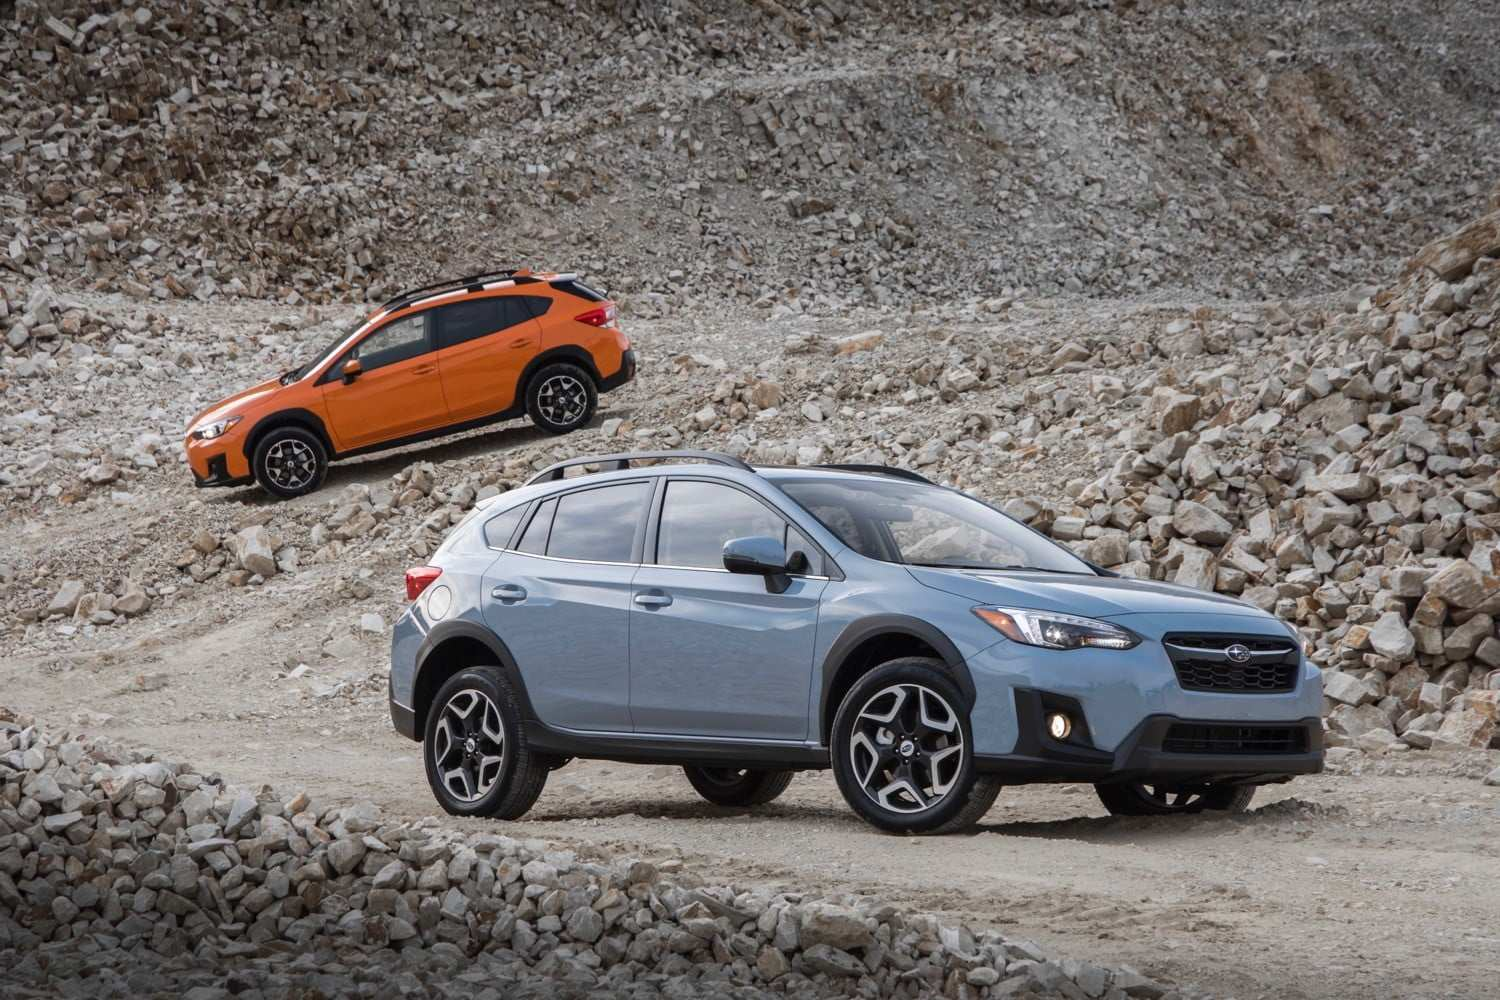 56 Concept of Subaru 2019 Crosstrek Hybrid Price And Release Date Specs by Subaru 2019 Crosstrek Hybrid Price And Release Date